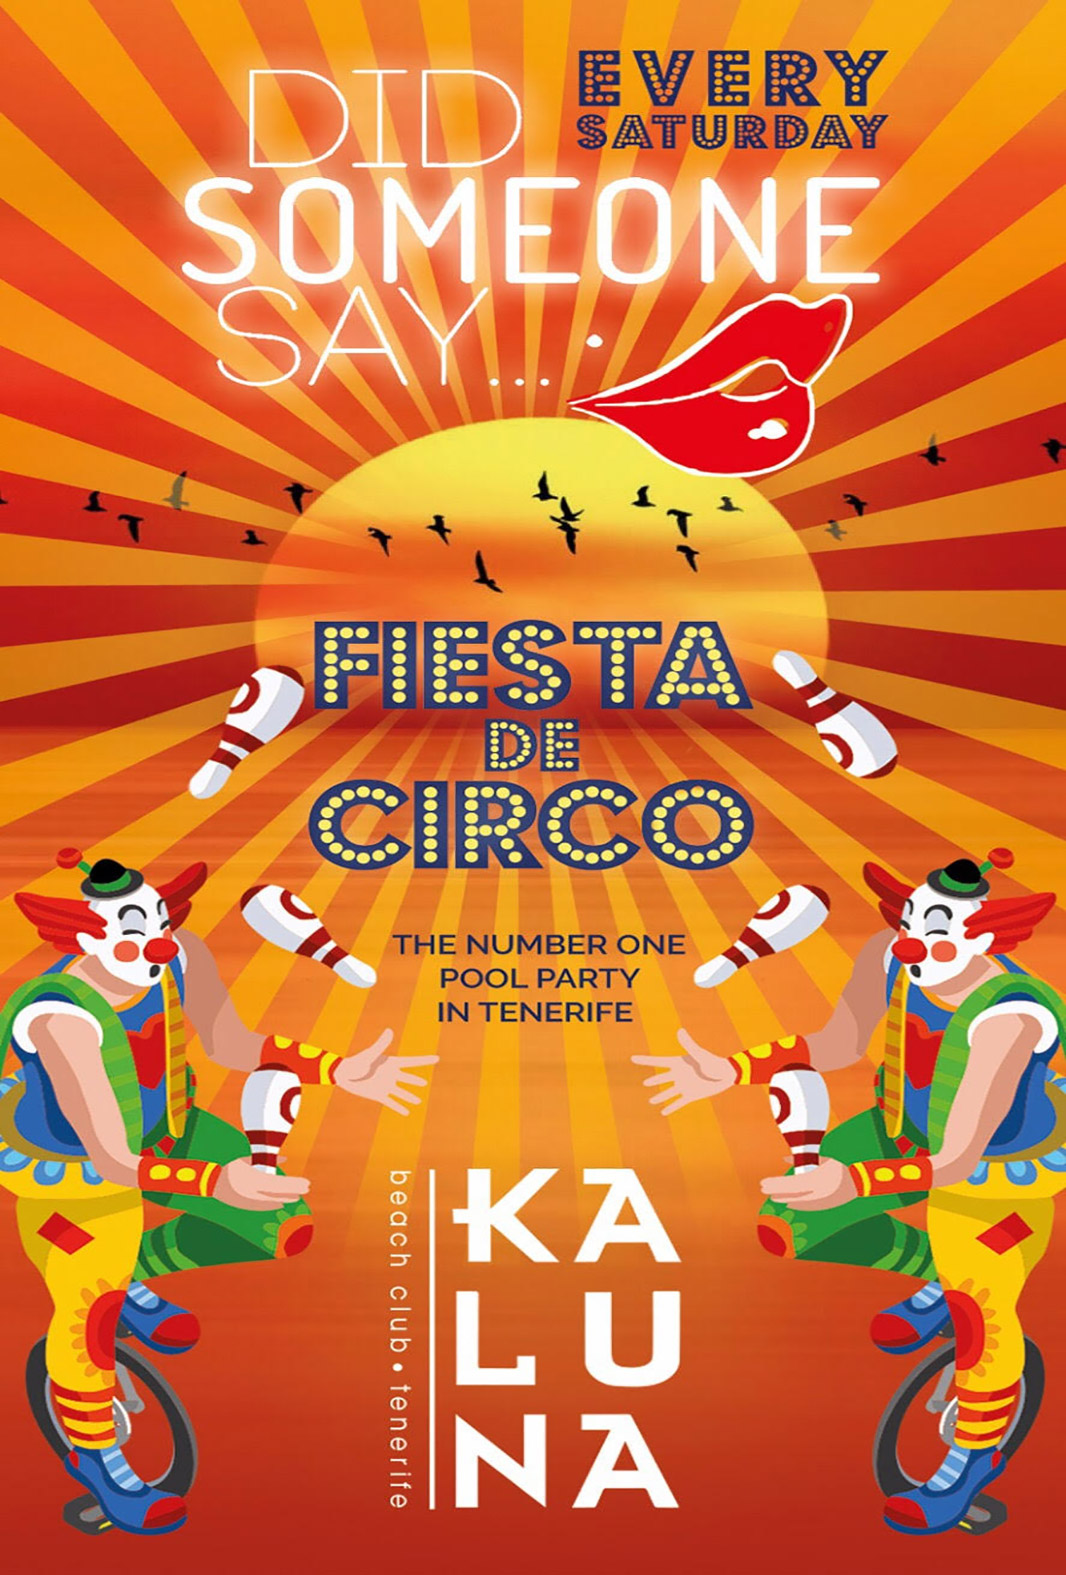 Fiesta de Circo Saturday Nights at Kaluna Beach Club Tenerife